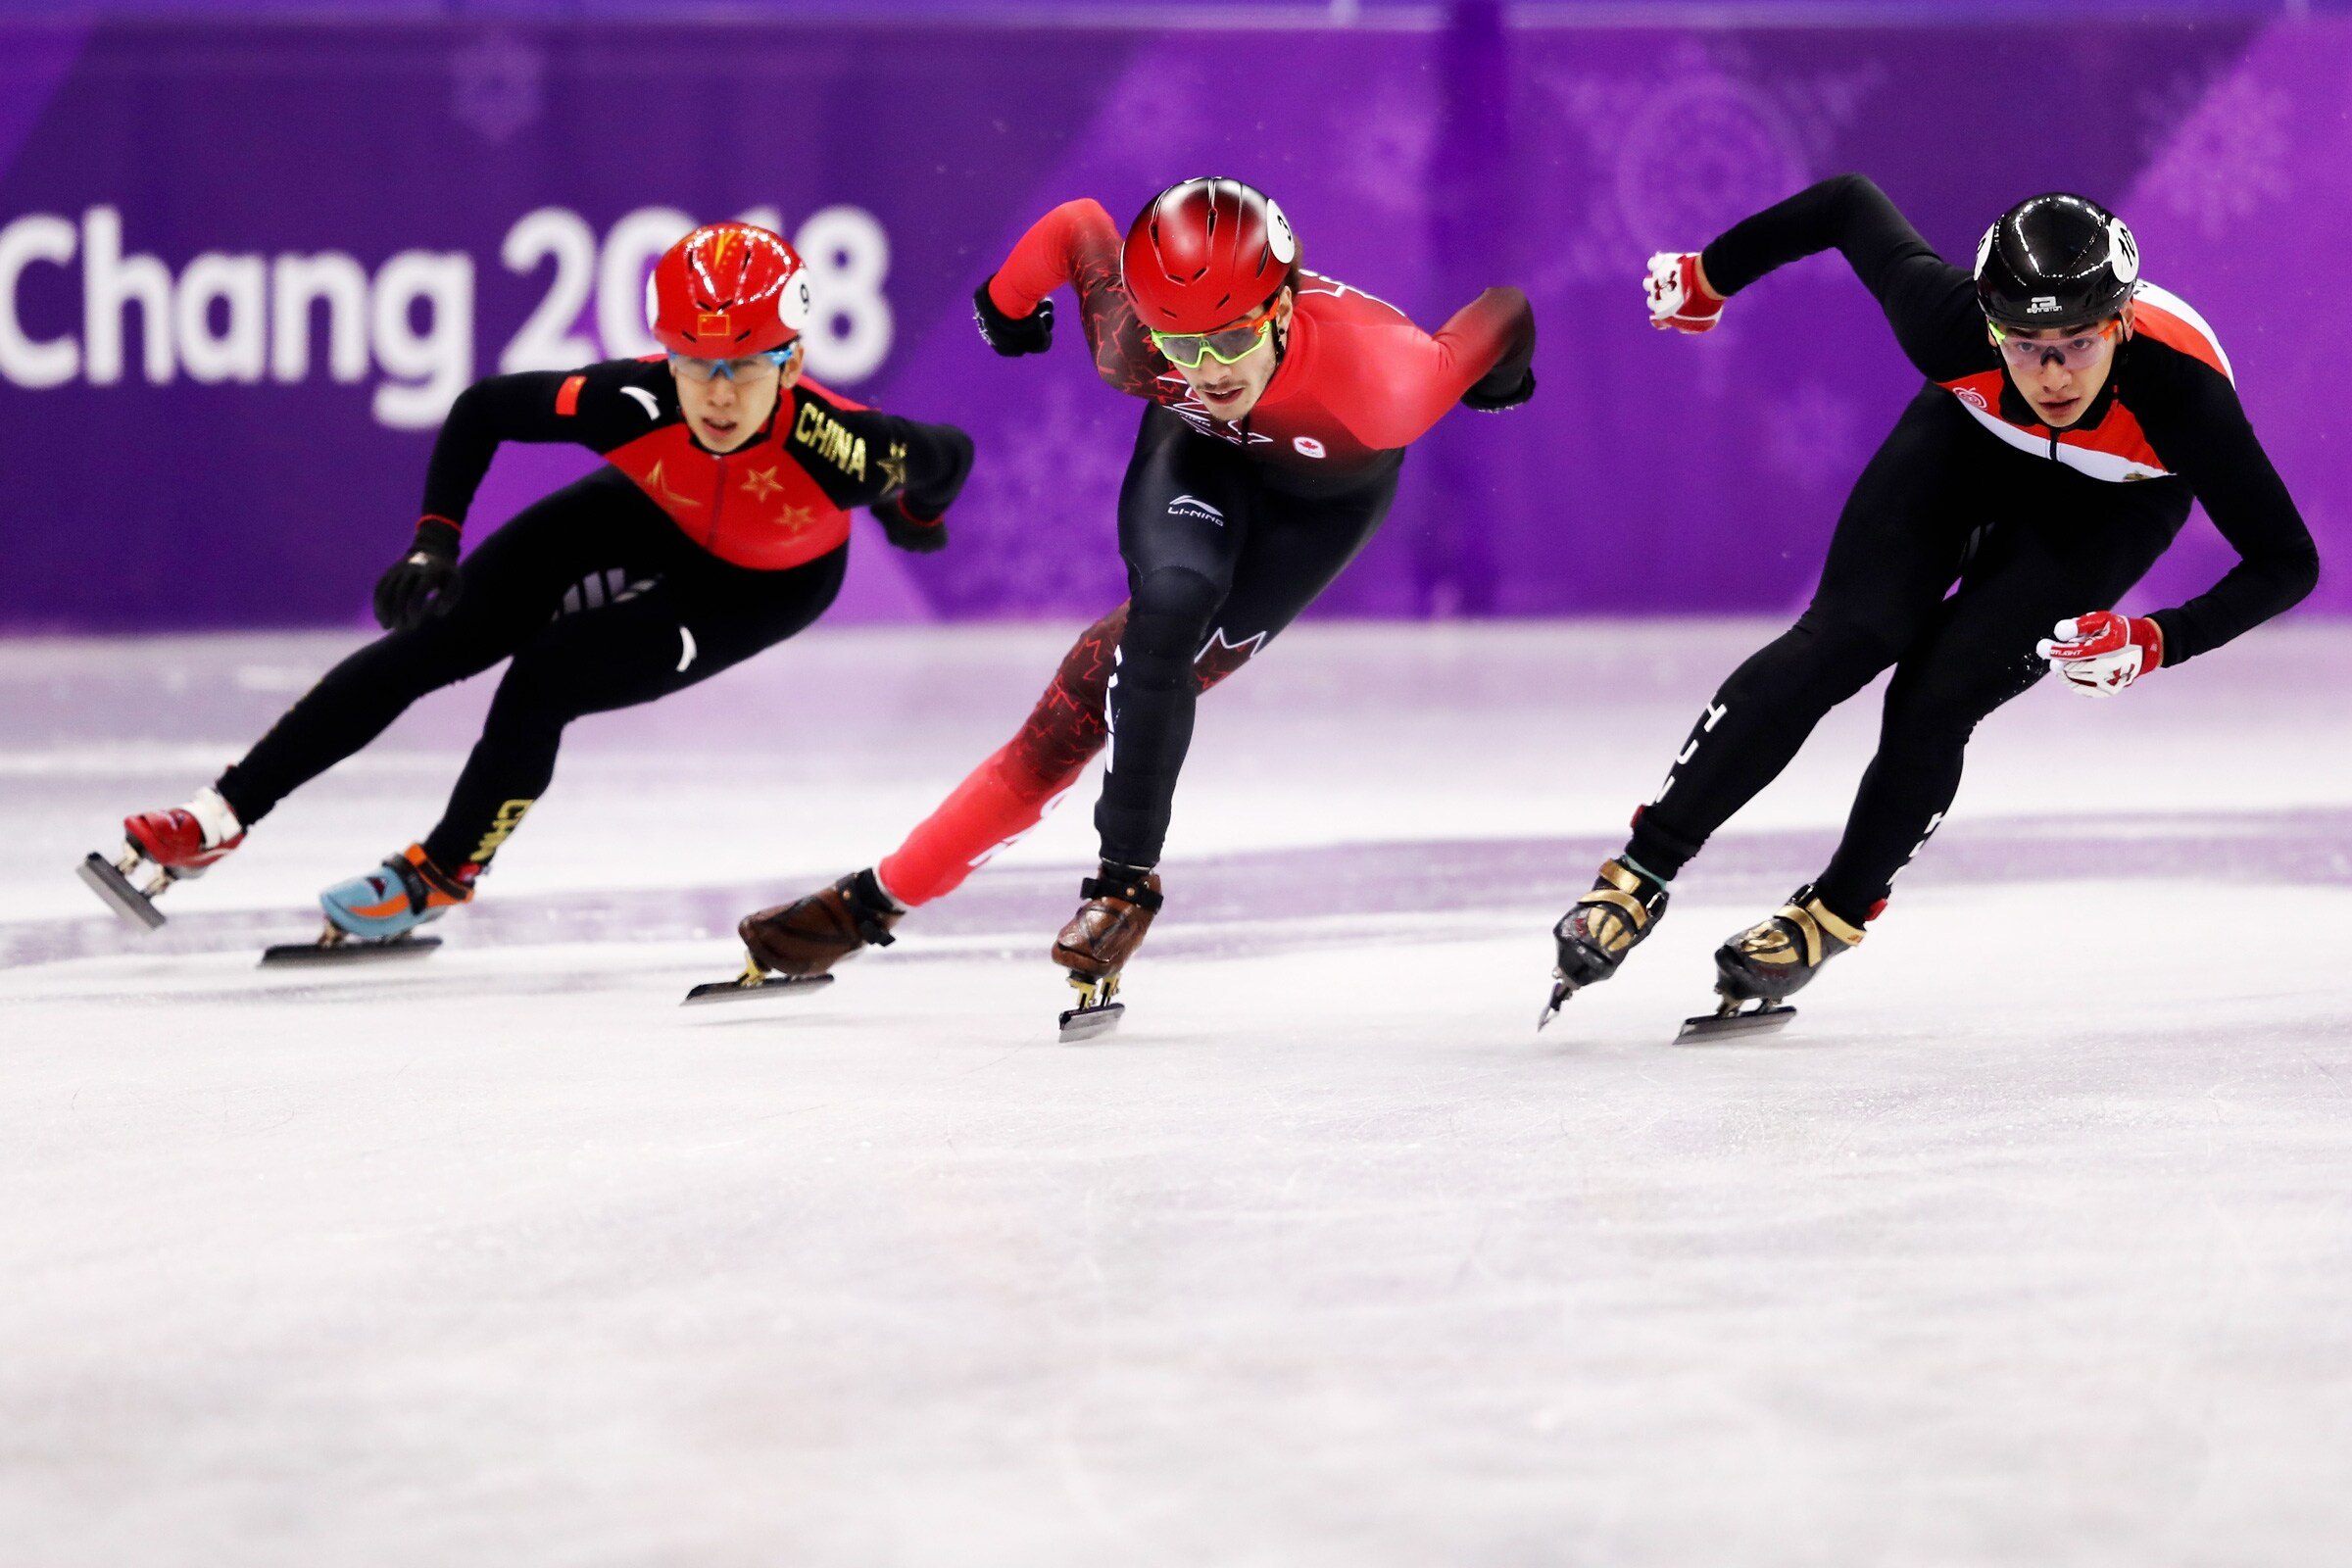 Short Track Speed Skating - Men's 5000m Relay